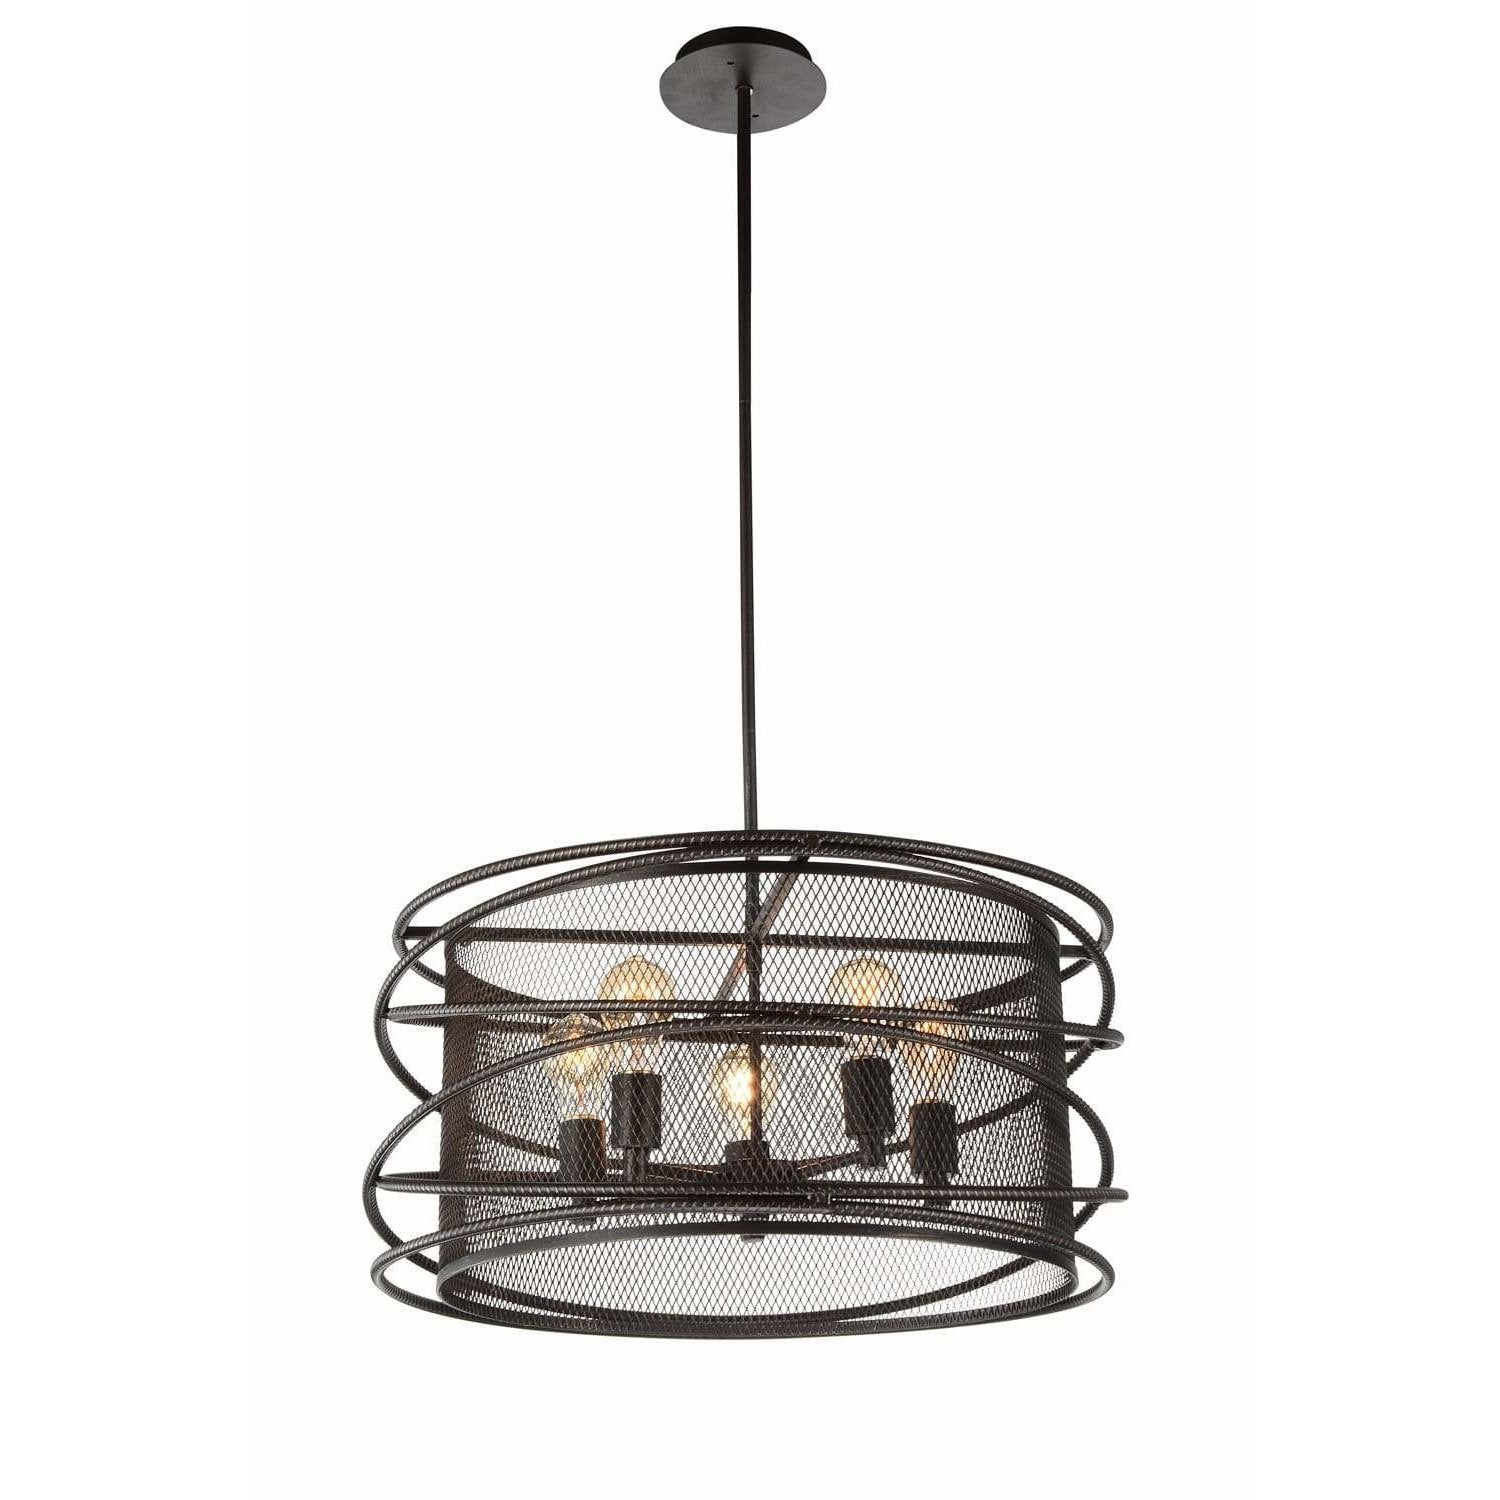 CWI Lighting Pendants Brown Darya 5 Light Up Pendant with Brown finish by CWI Lighting 9700P22-5-197